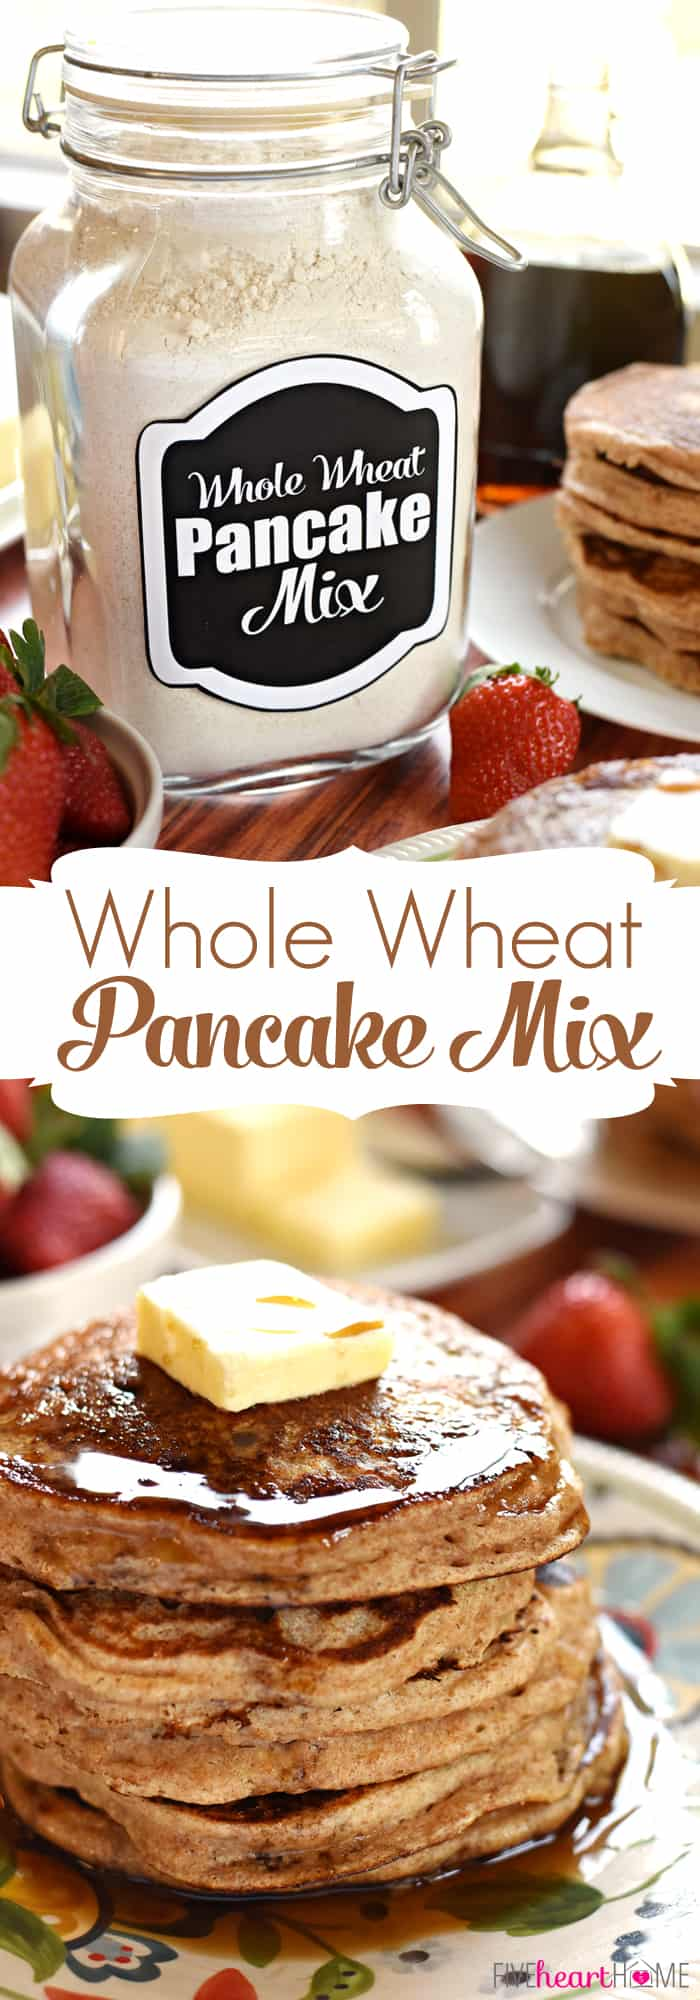 Homemade whole wheat pancake mix whole wheat pancake mix keep a jar of this all natural homemade mix in ccuart